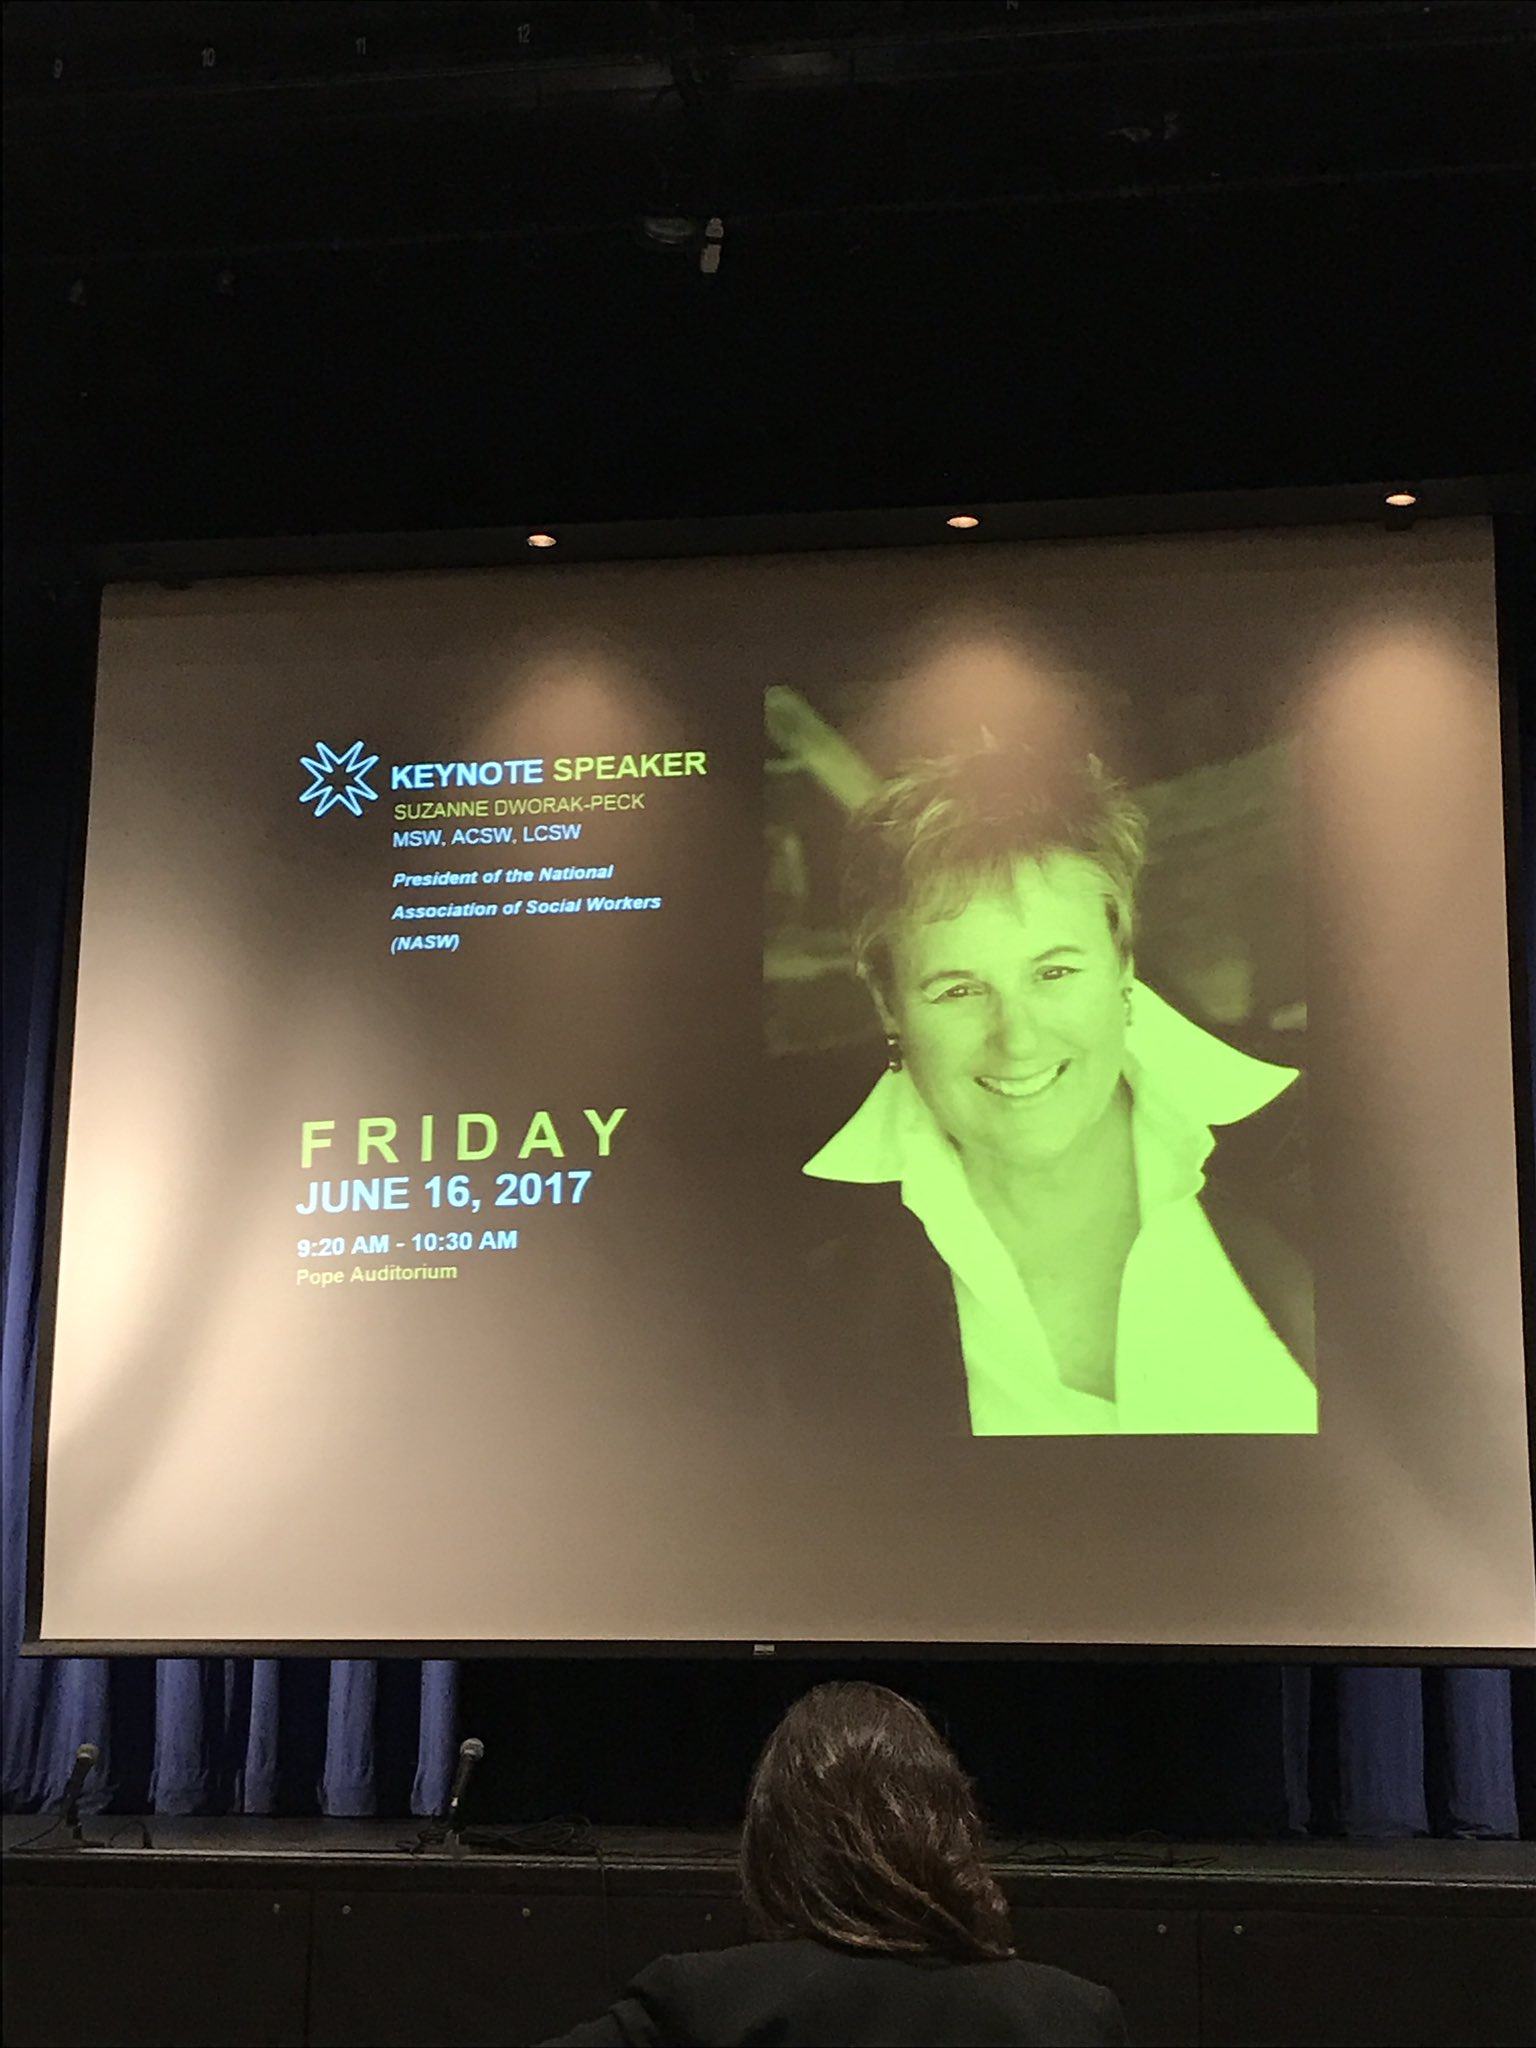 Question of the day, how did Suzanne Dworak-Peck get the @uscsocialwork named after her anyway??  #NSWM28 https://t.co/eHIX6NQSS4